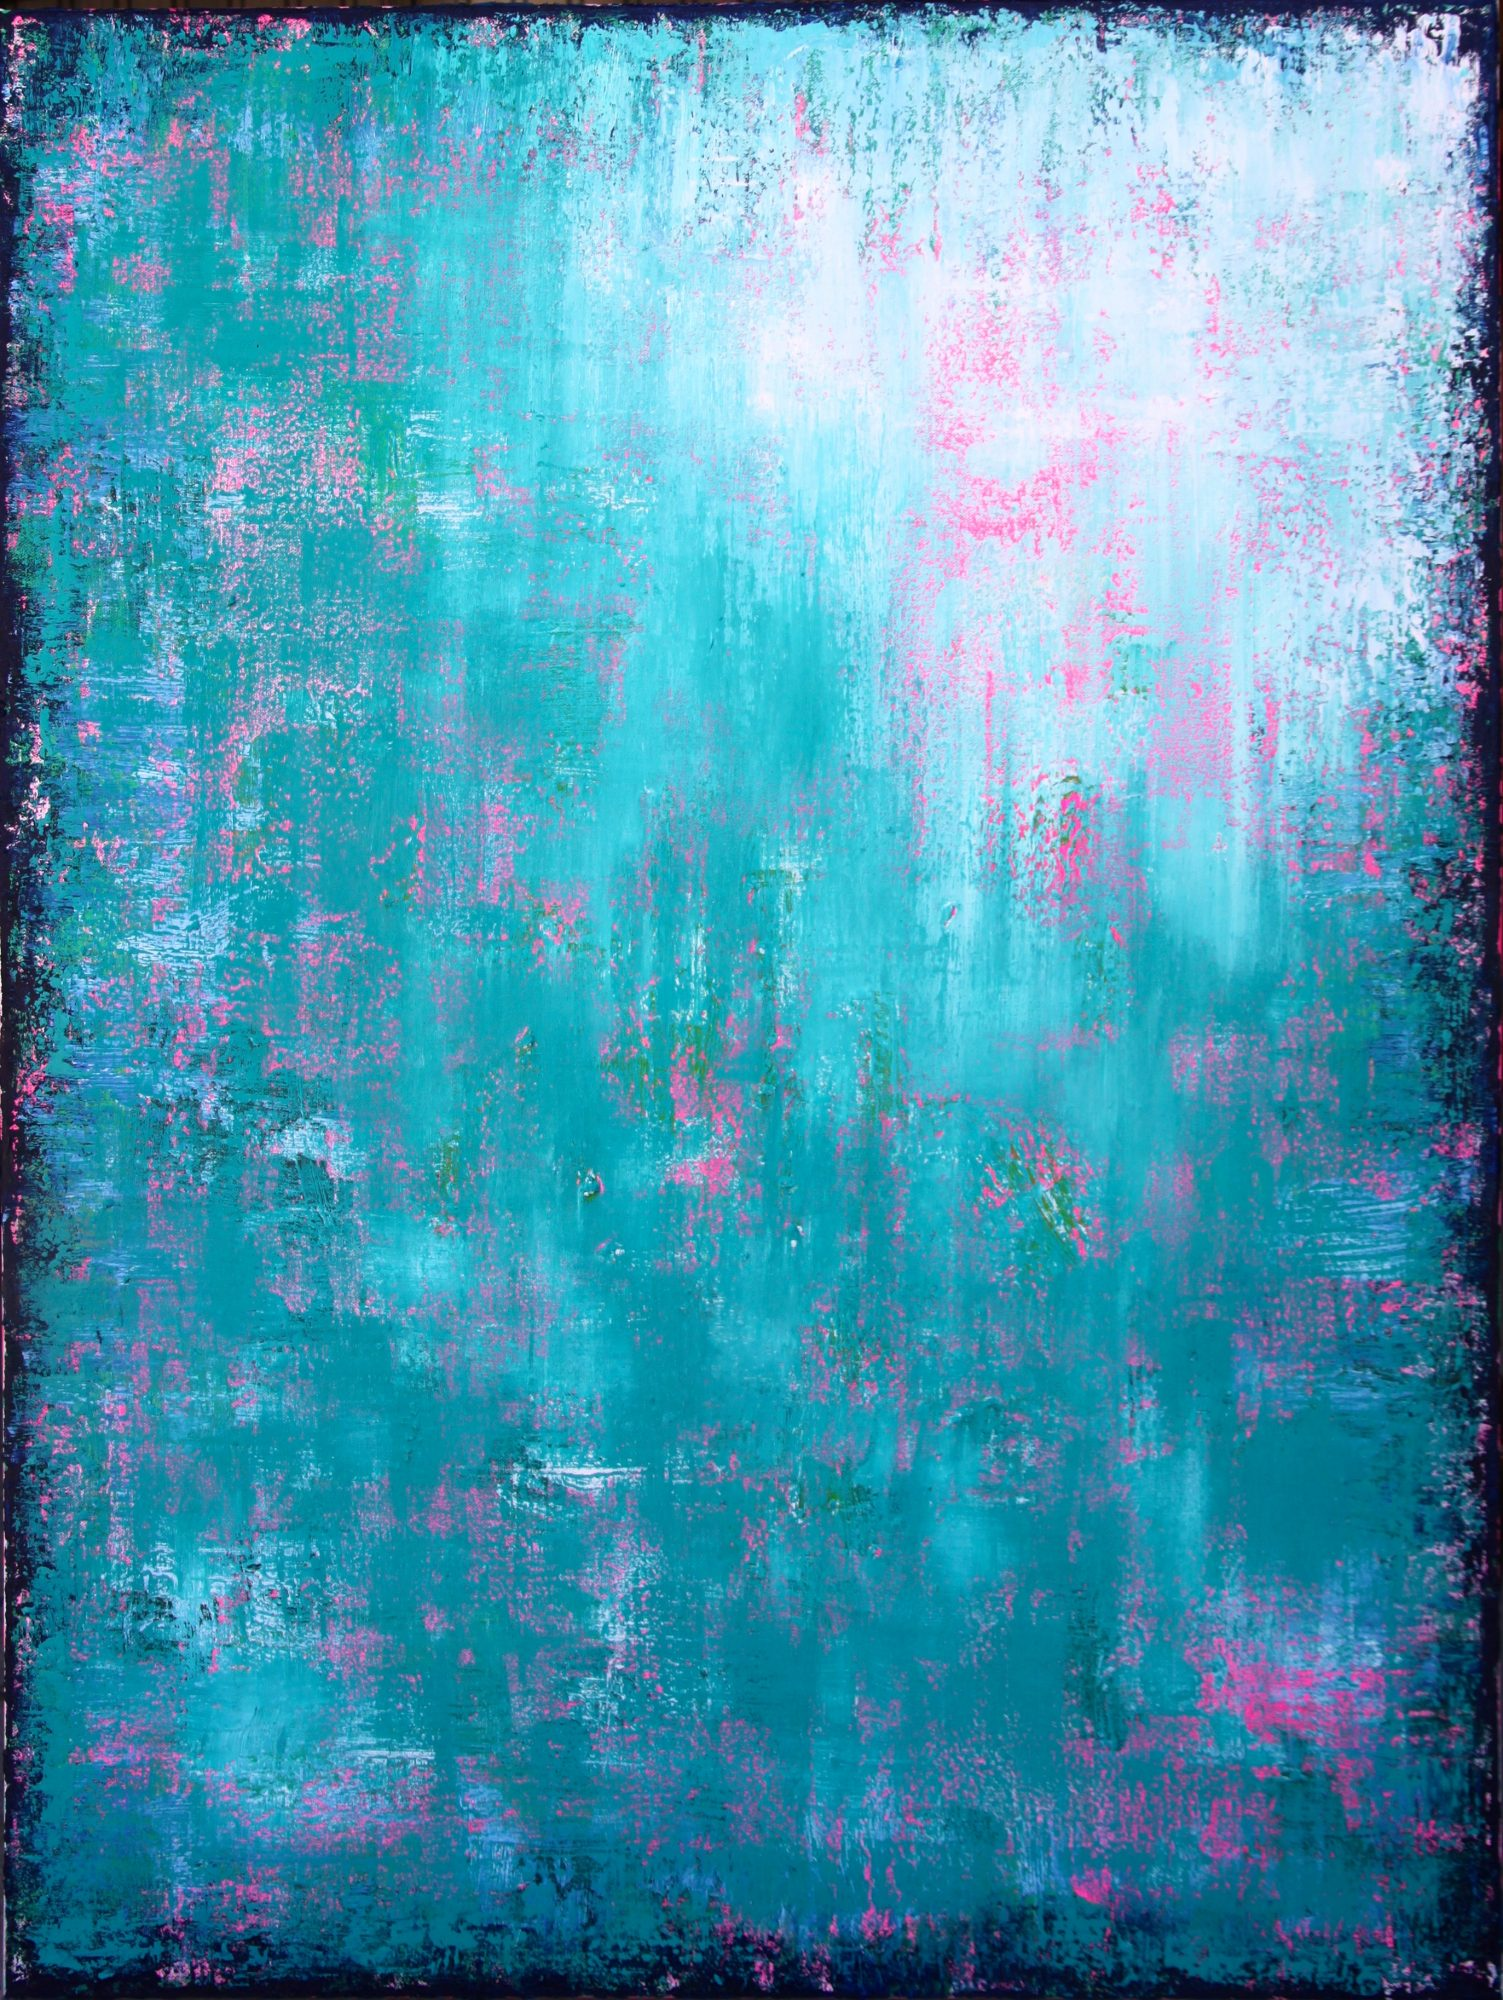 belinda-nadwie-art-abstract-painting-blushed